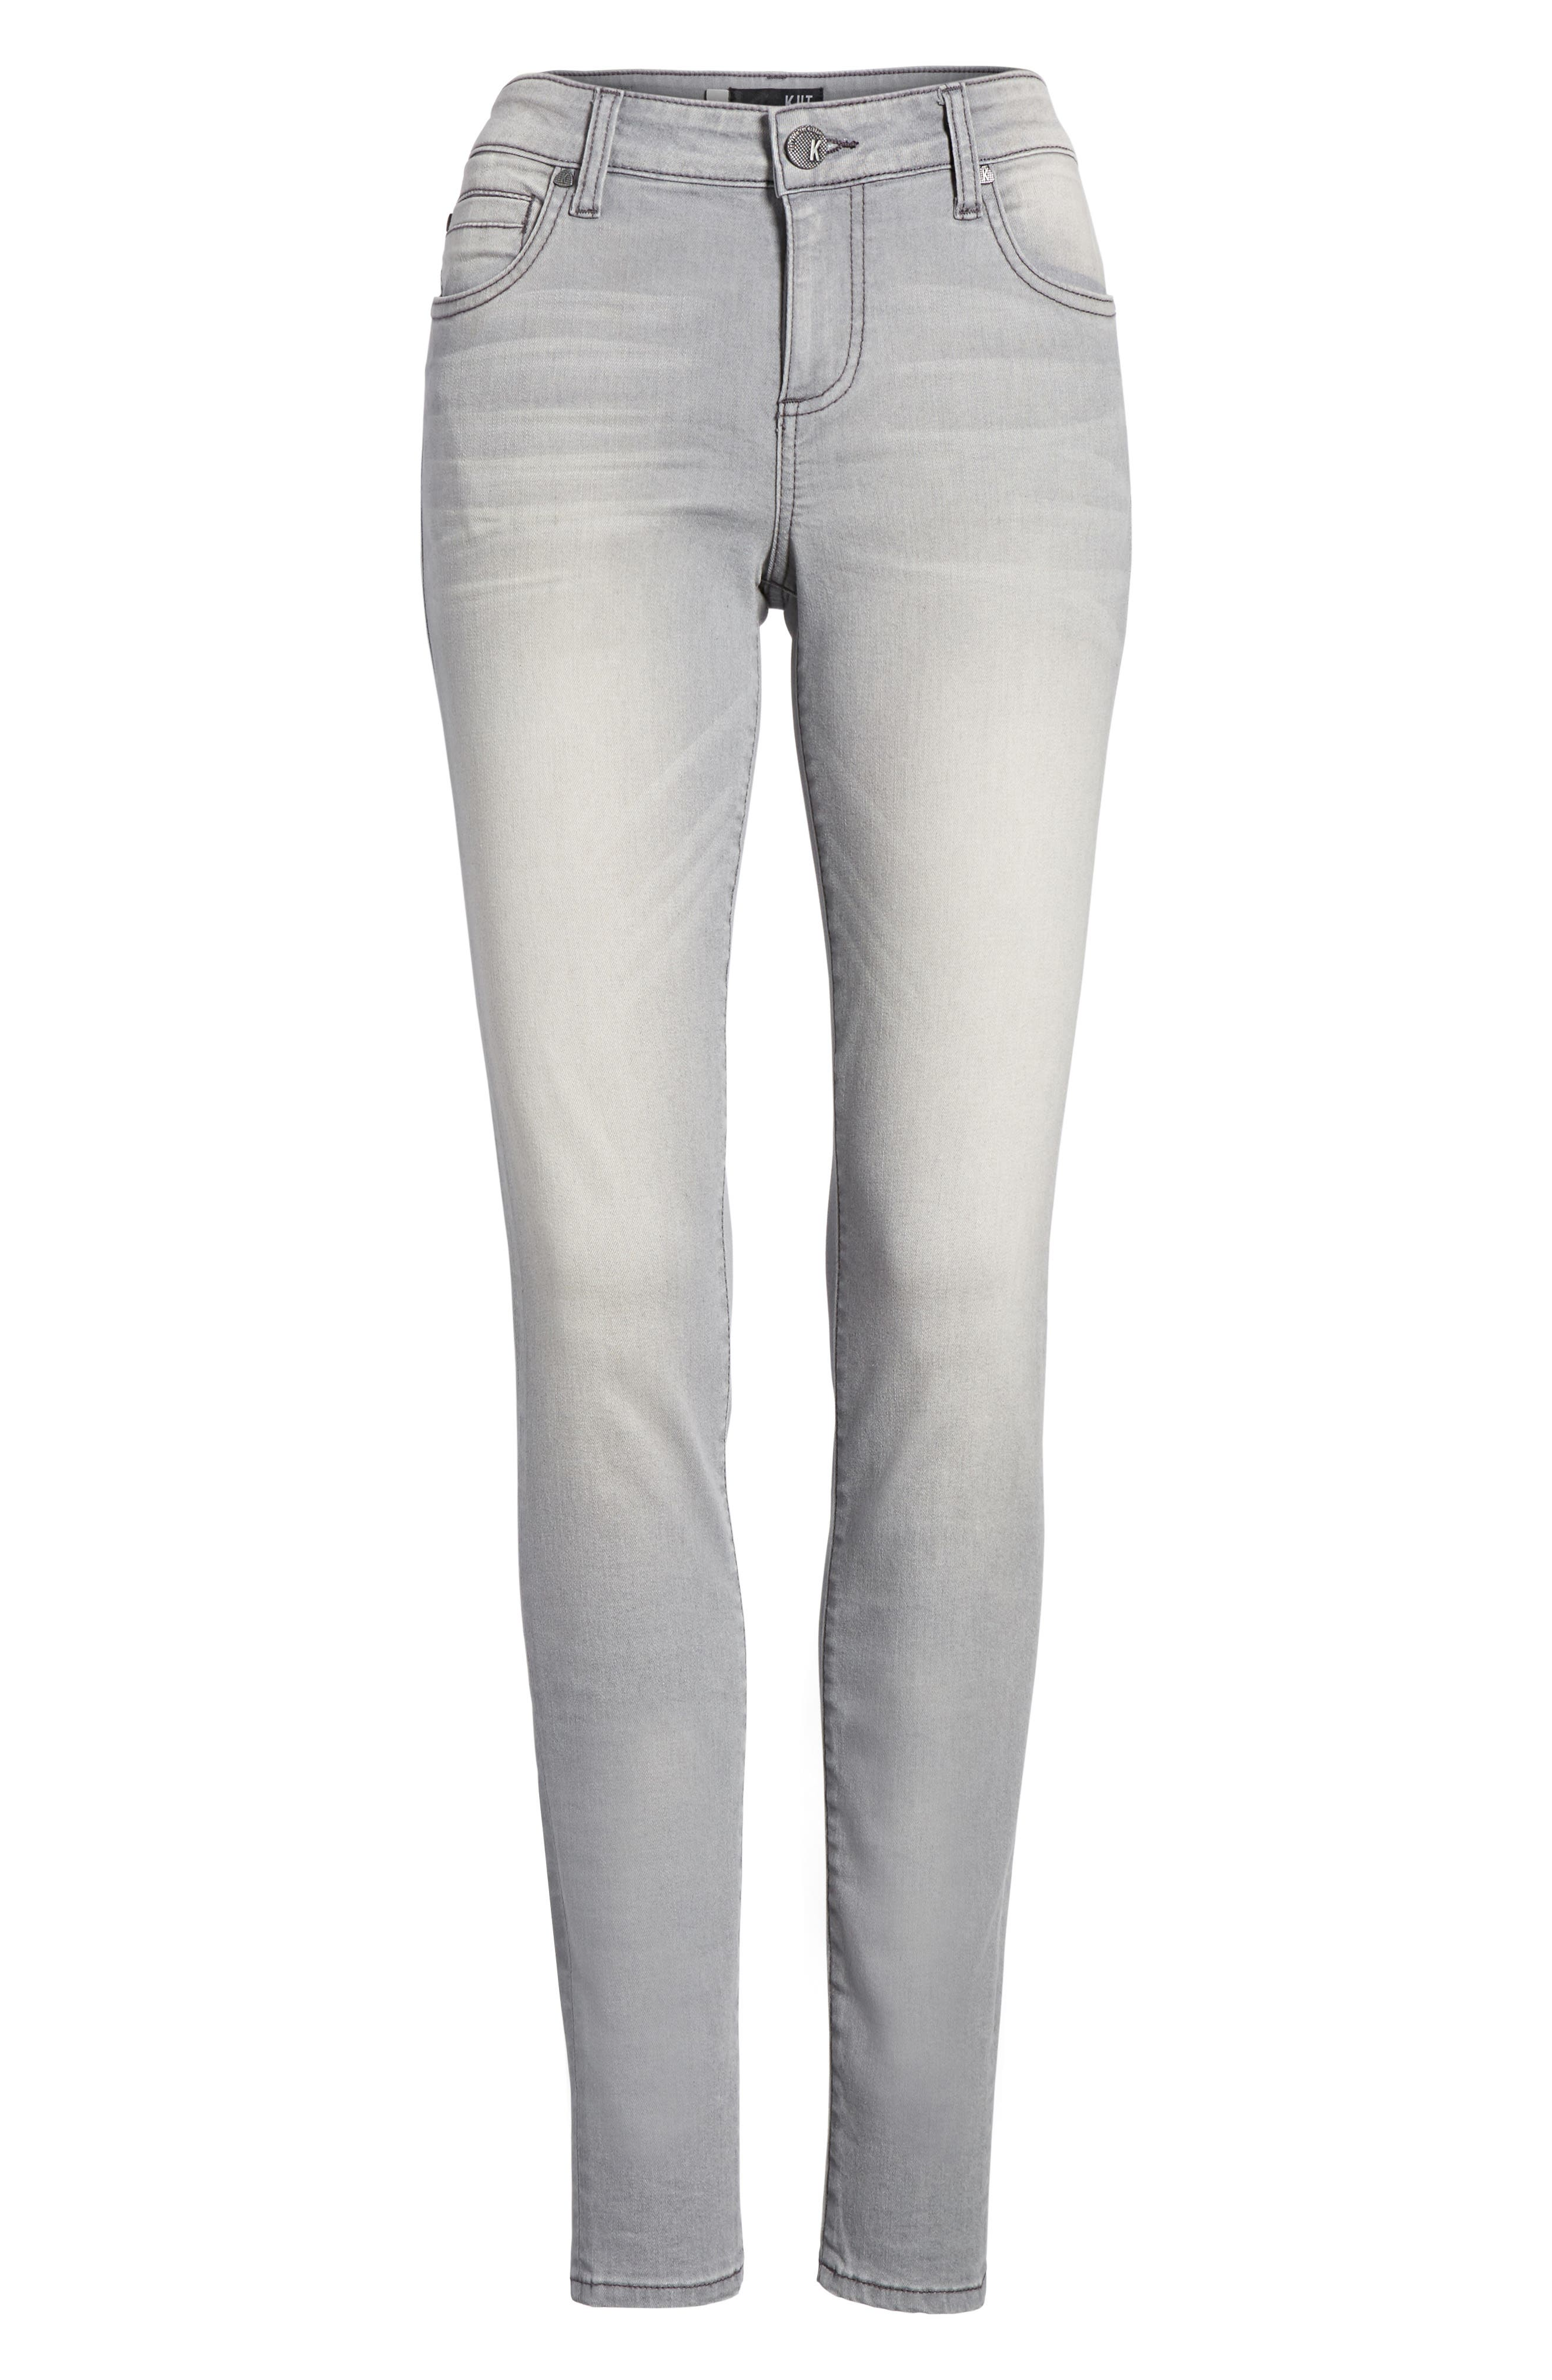 Mia Skinny Jeans,                             Alternate thumbnail 6, color,